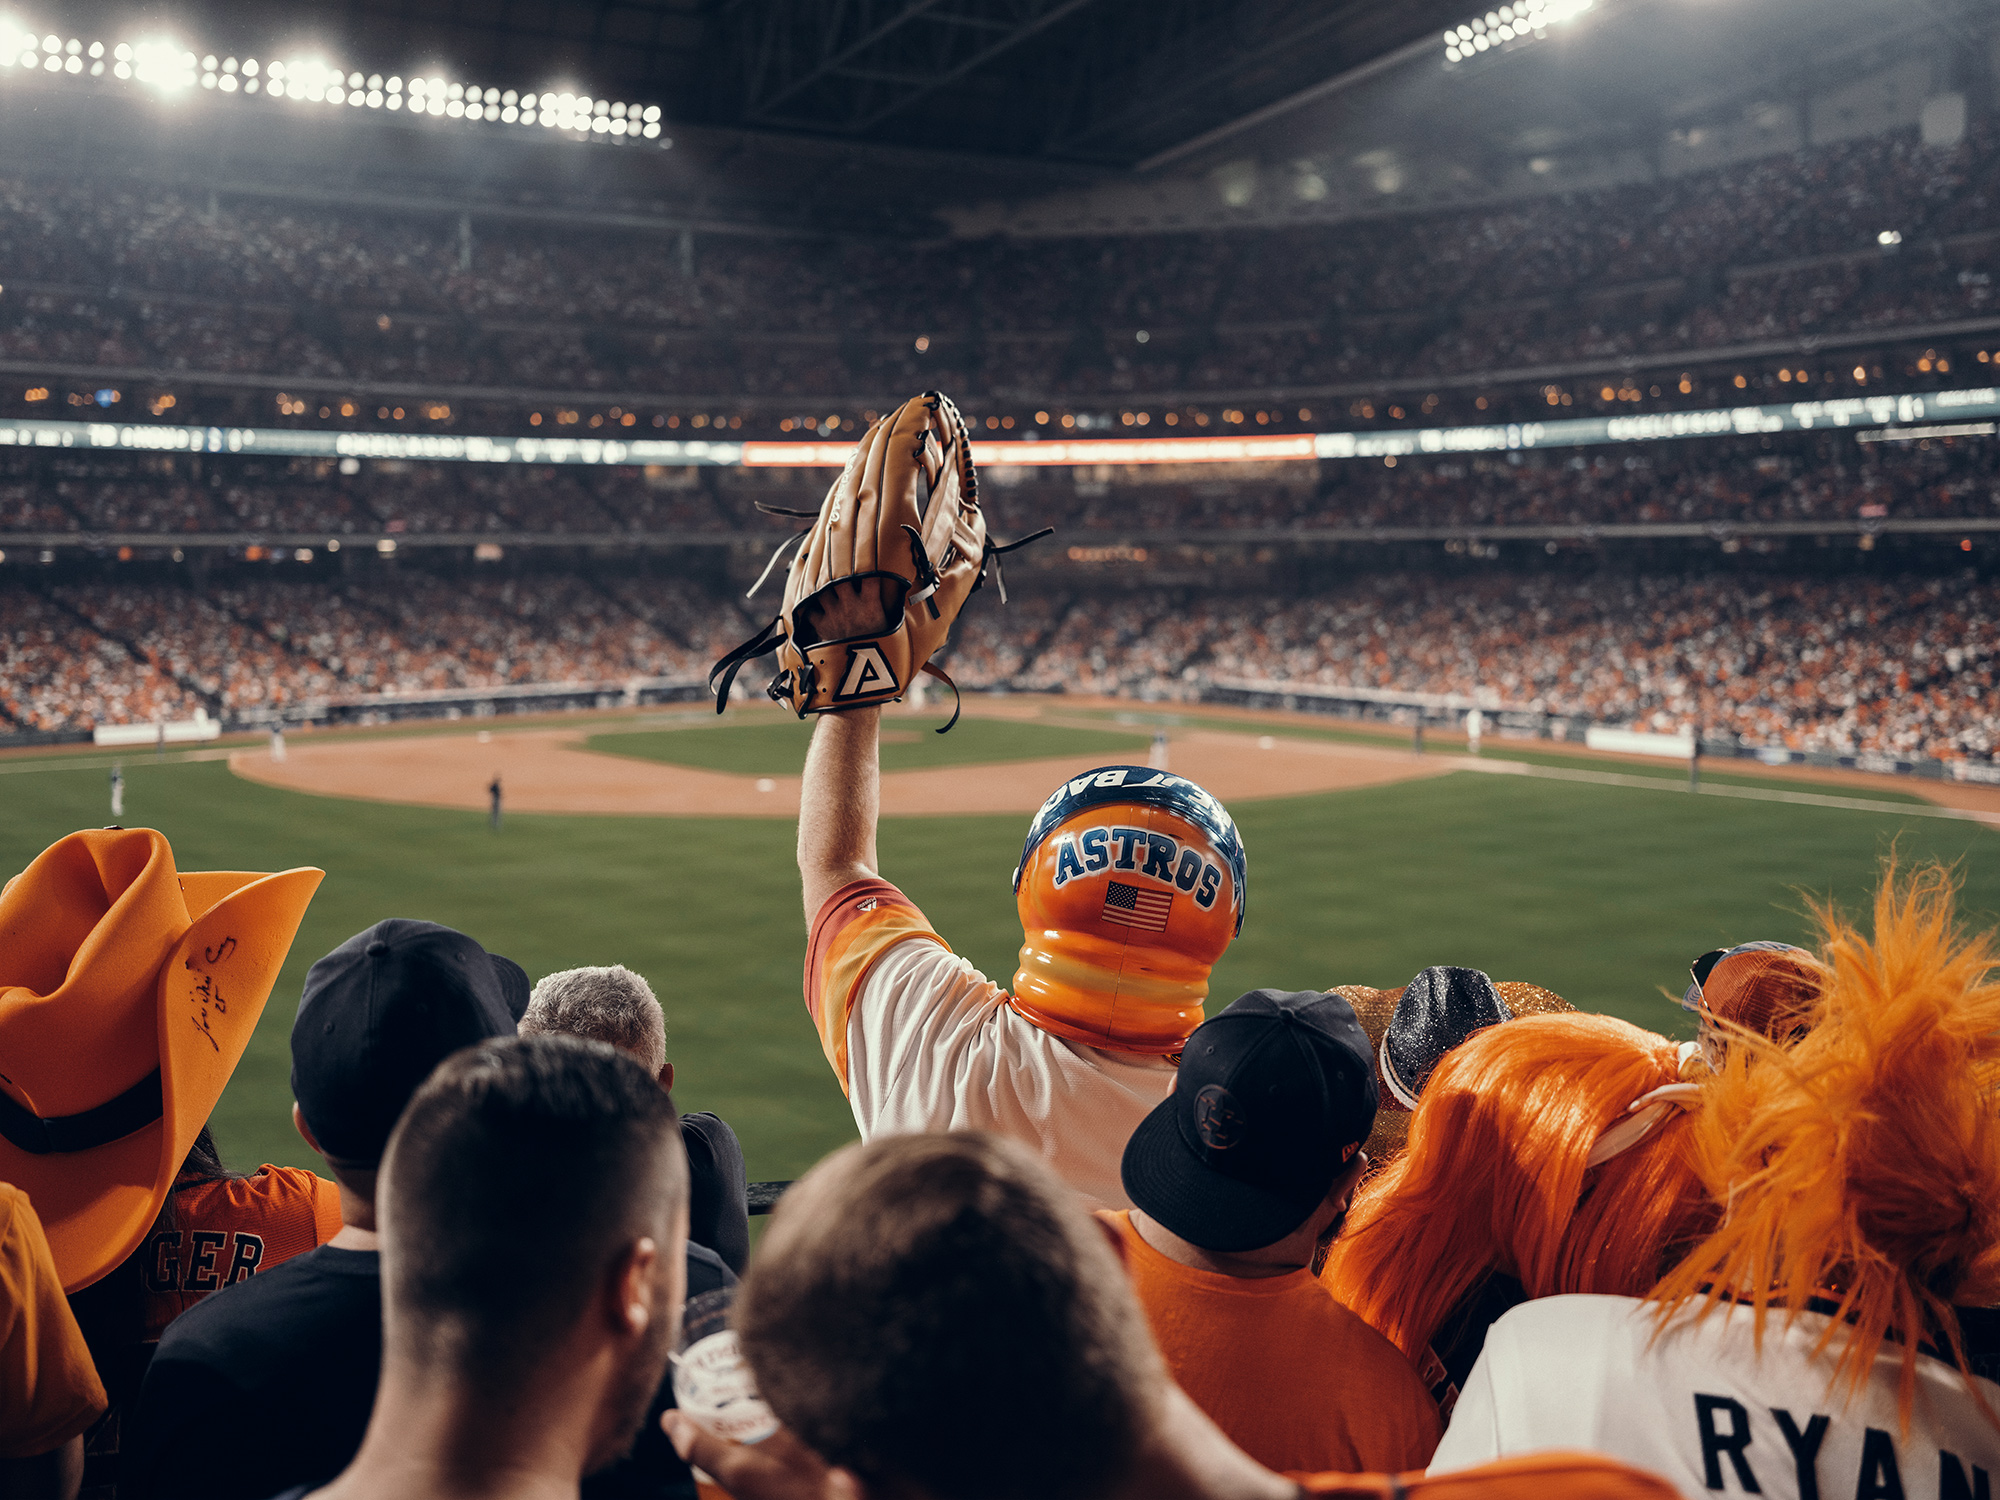 Houston Astros MLB baseball fans during the 2019 World Series, photographed by Houston photographer, Todd Spoth.